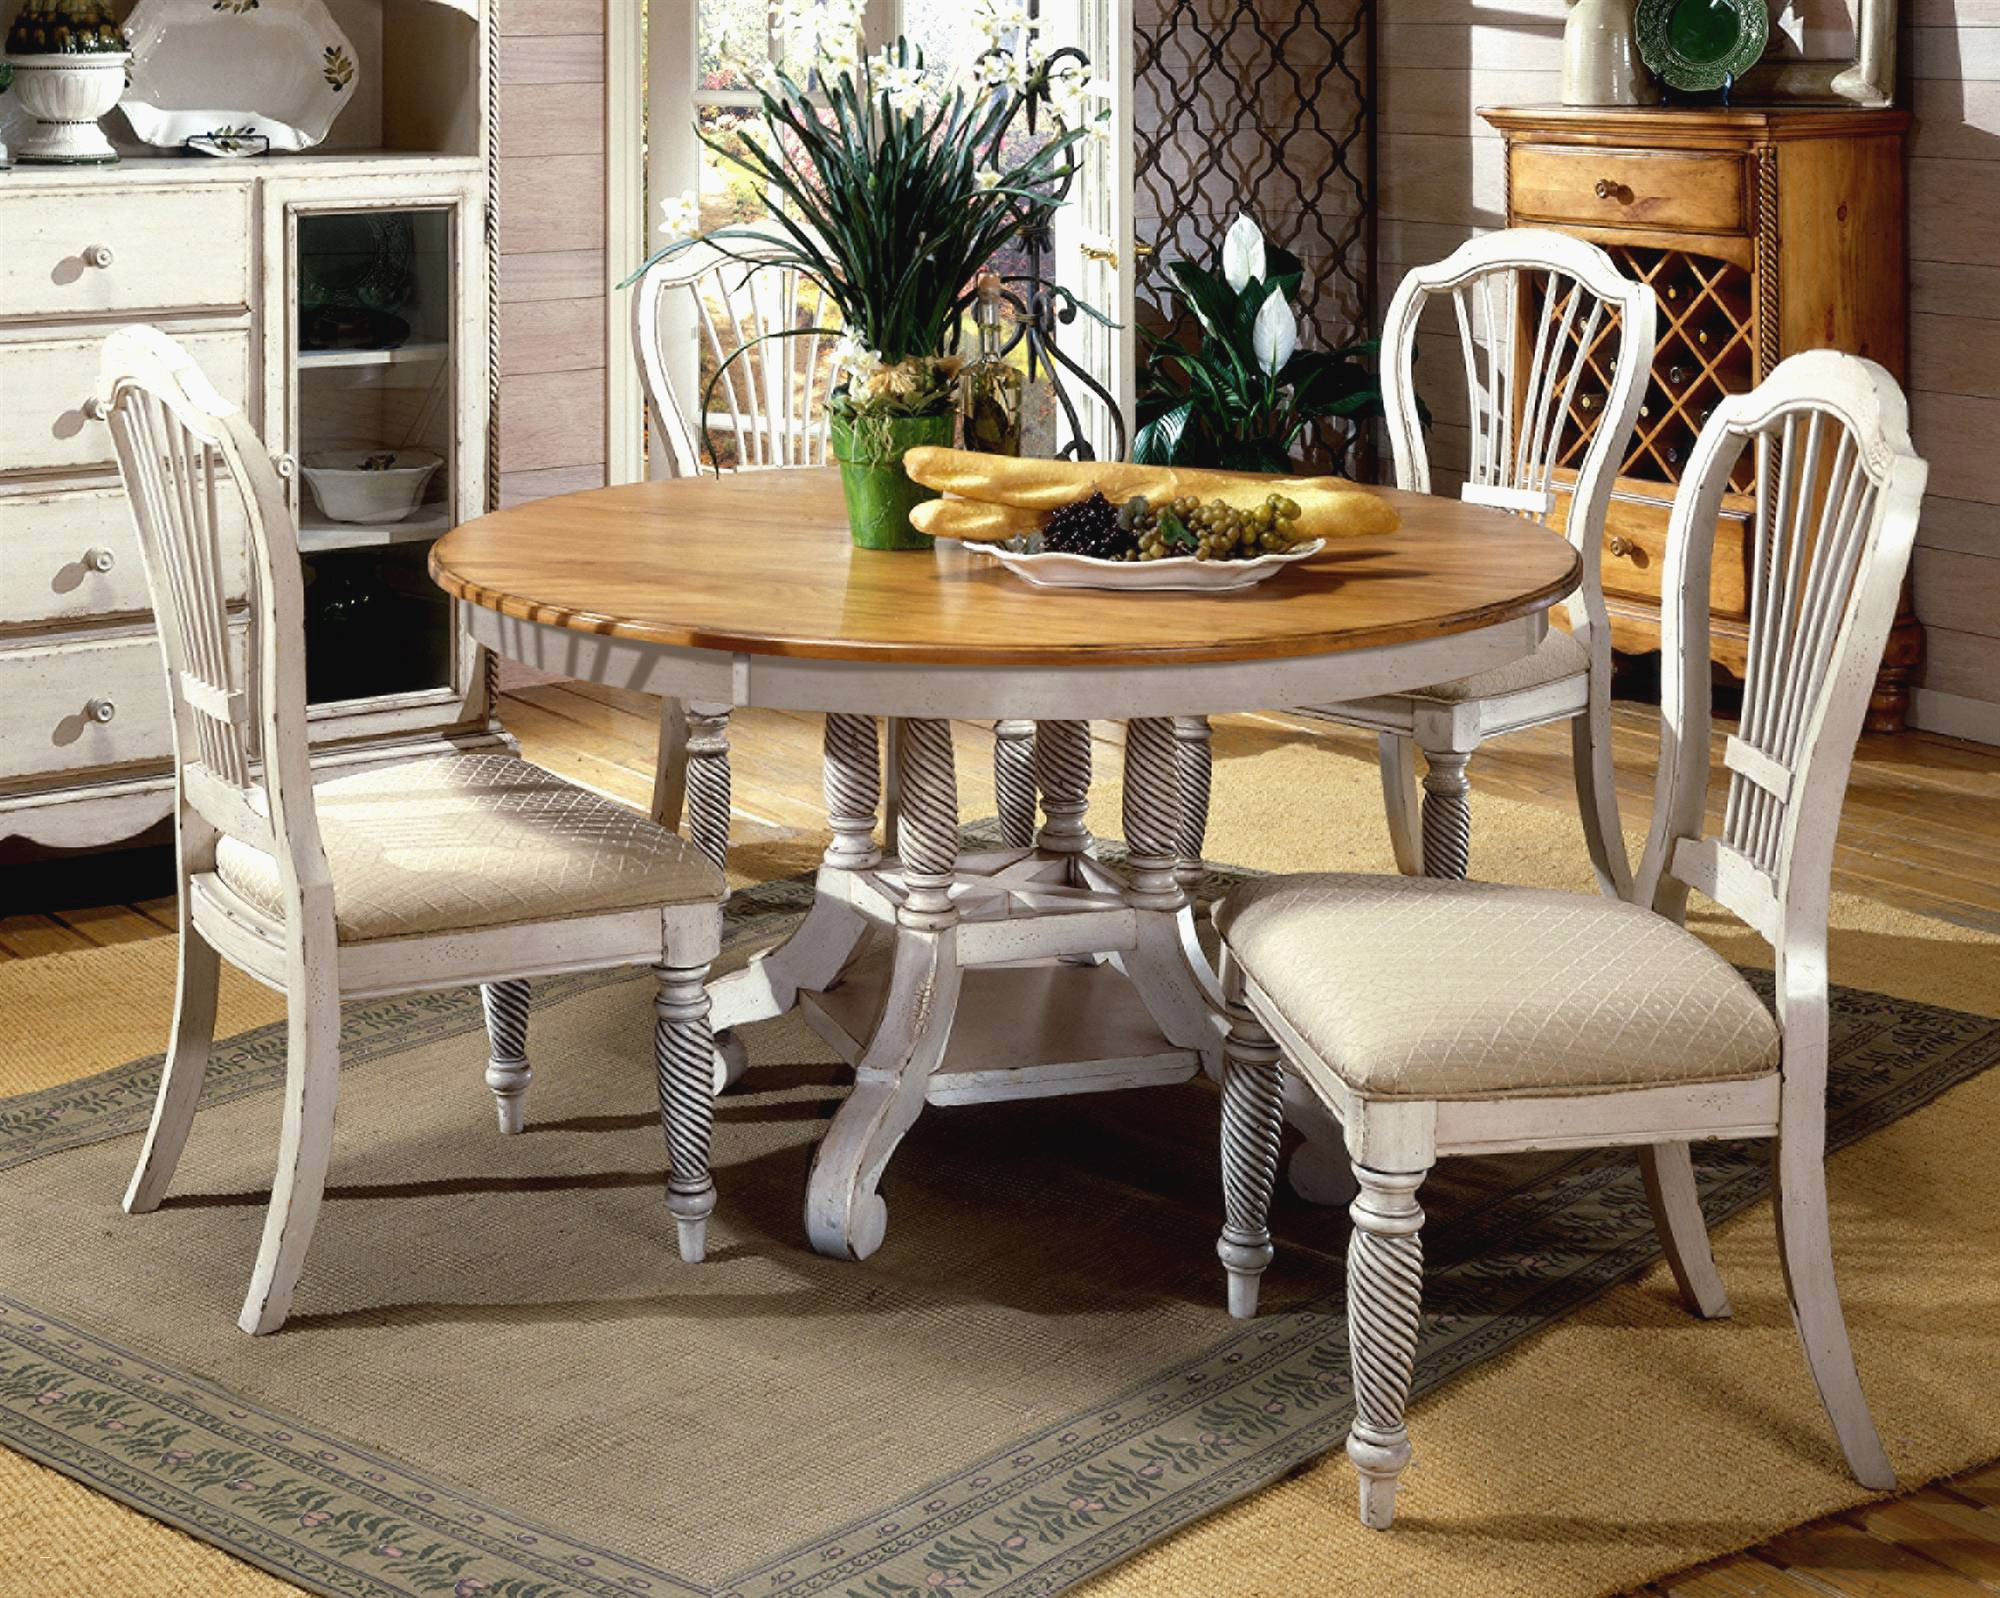 Farmhouse Style Dining Room Table Funny 30 the Best Round Dining Room Tables  Ideas Onionskeen